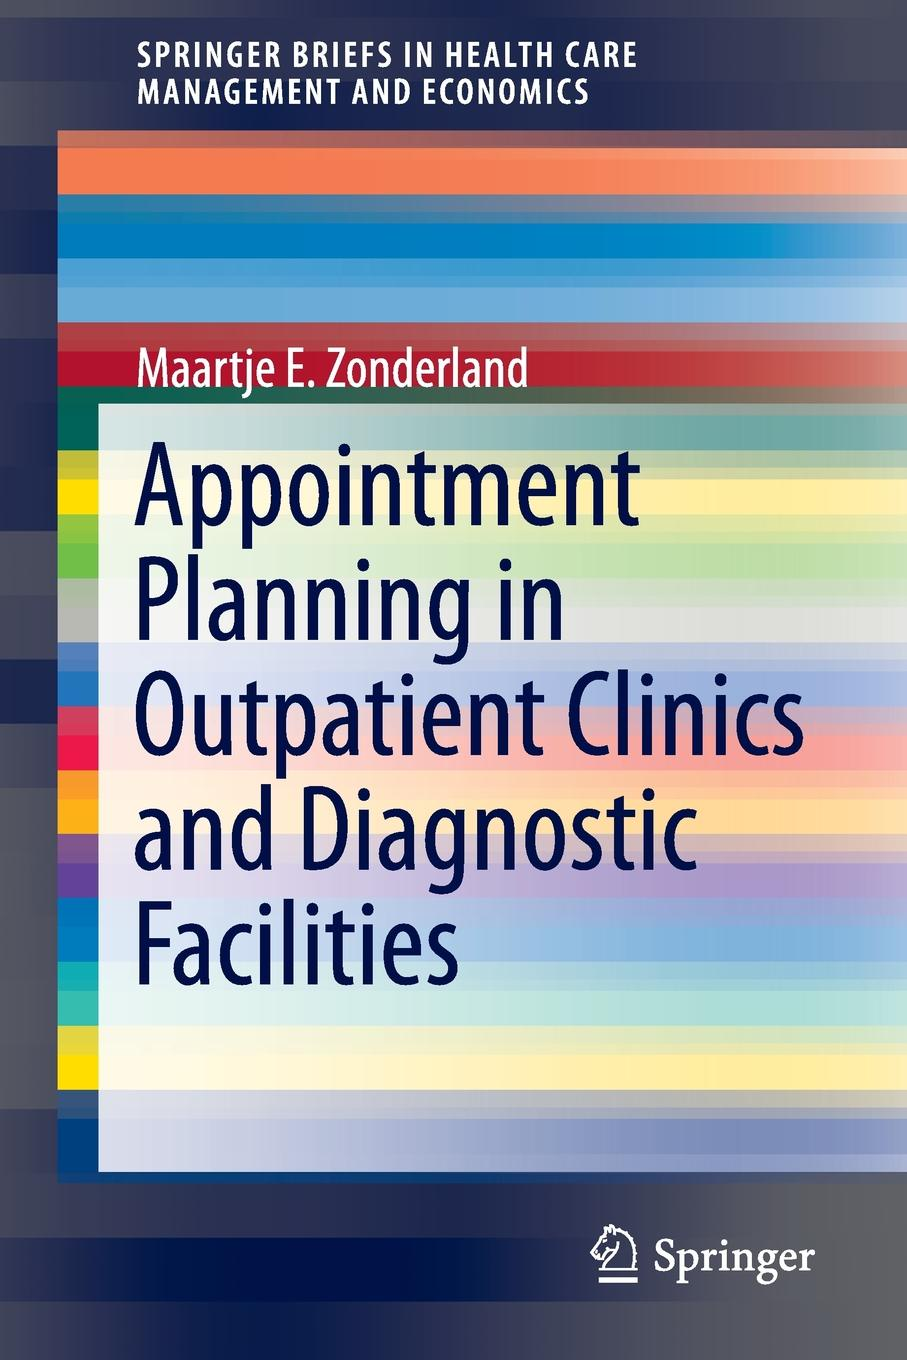 Maartje E. Zonderland Appointment Planning in Outpatient Clinics and Diagnostic Facilities myron grant a design that cares planning health facilities for patients and visitors